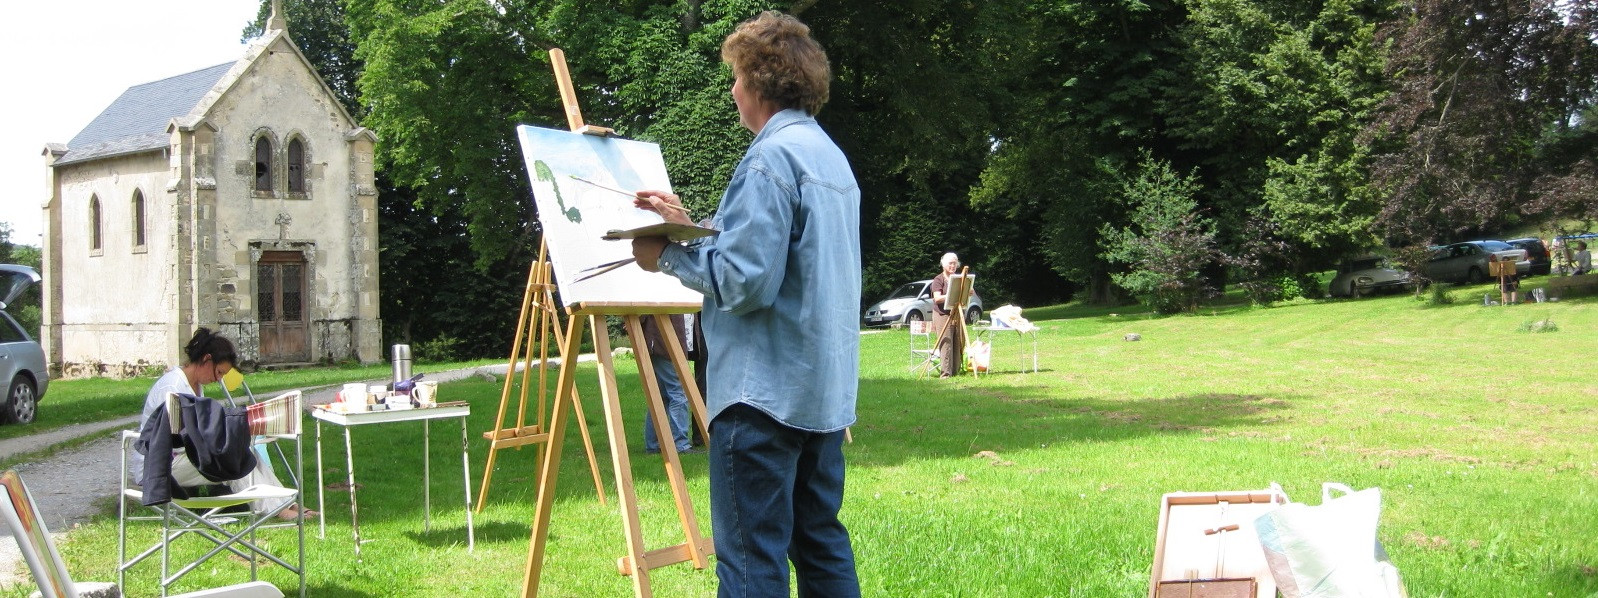 PAINTERS COURSE ON THE ABBEY